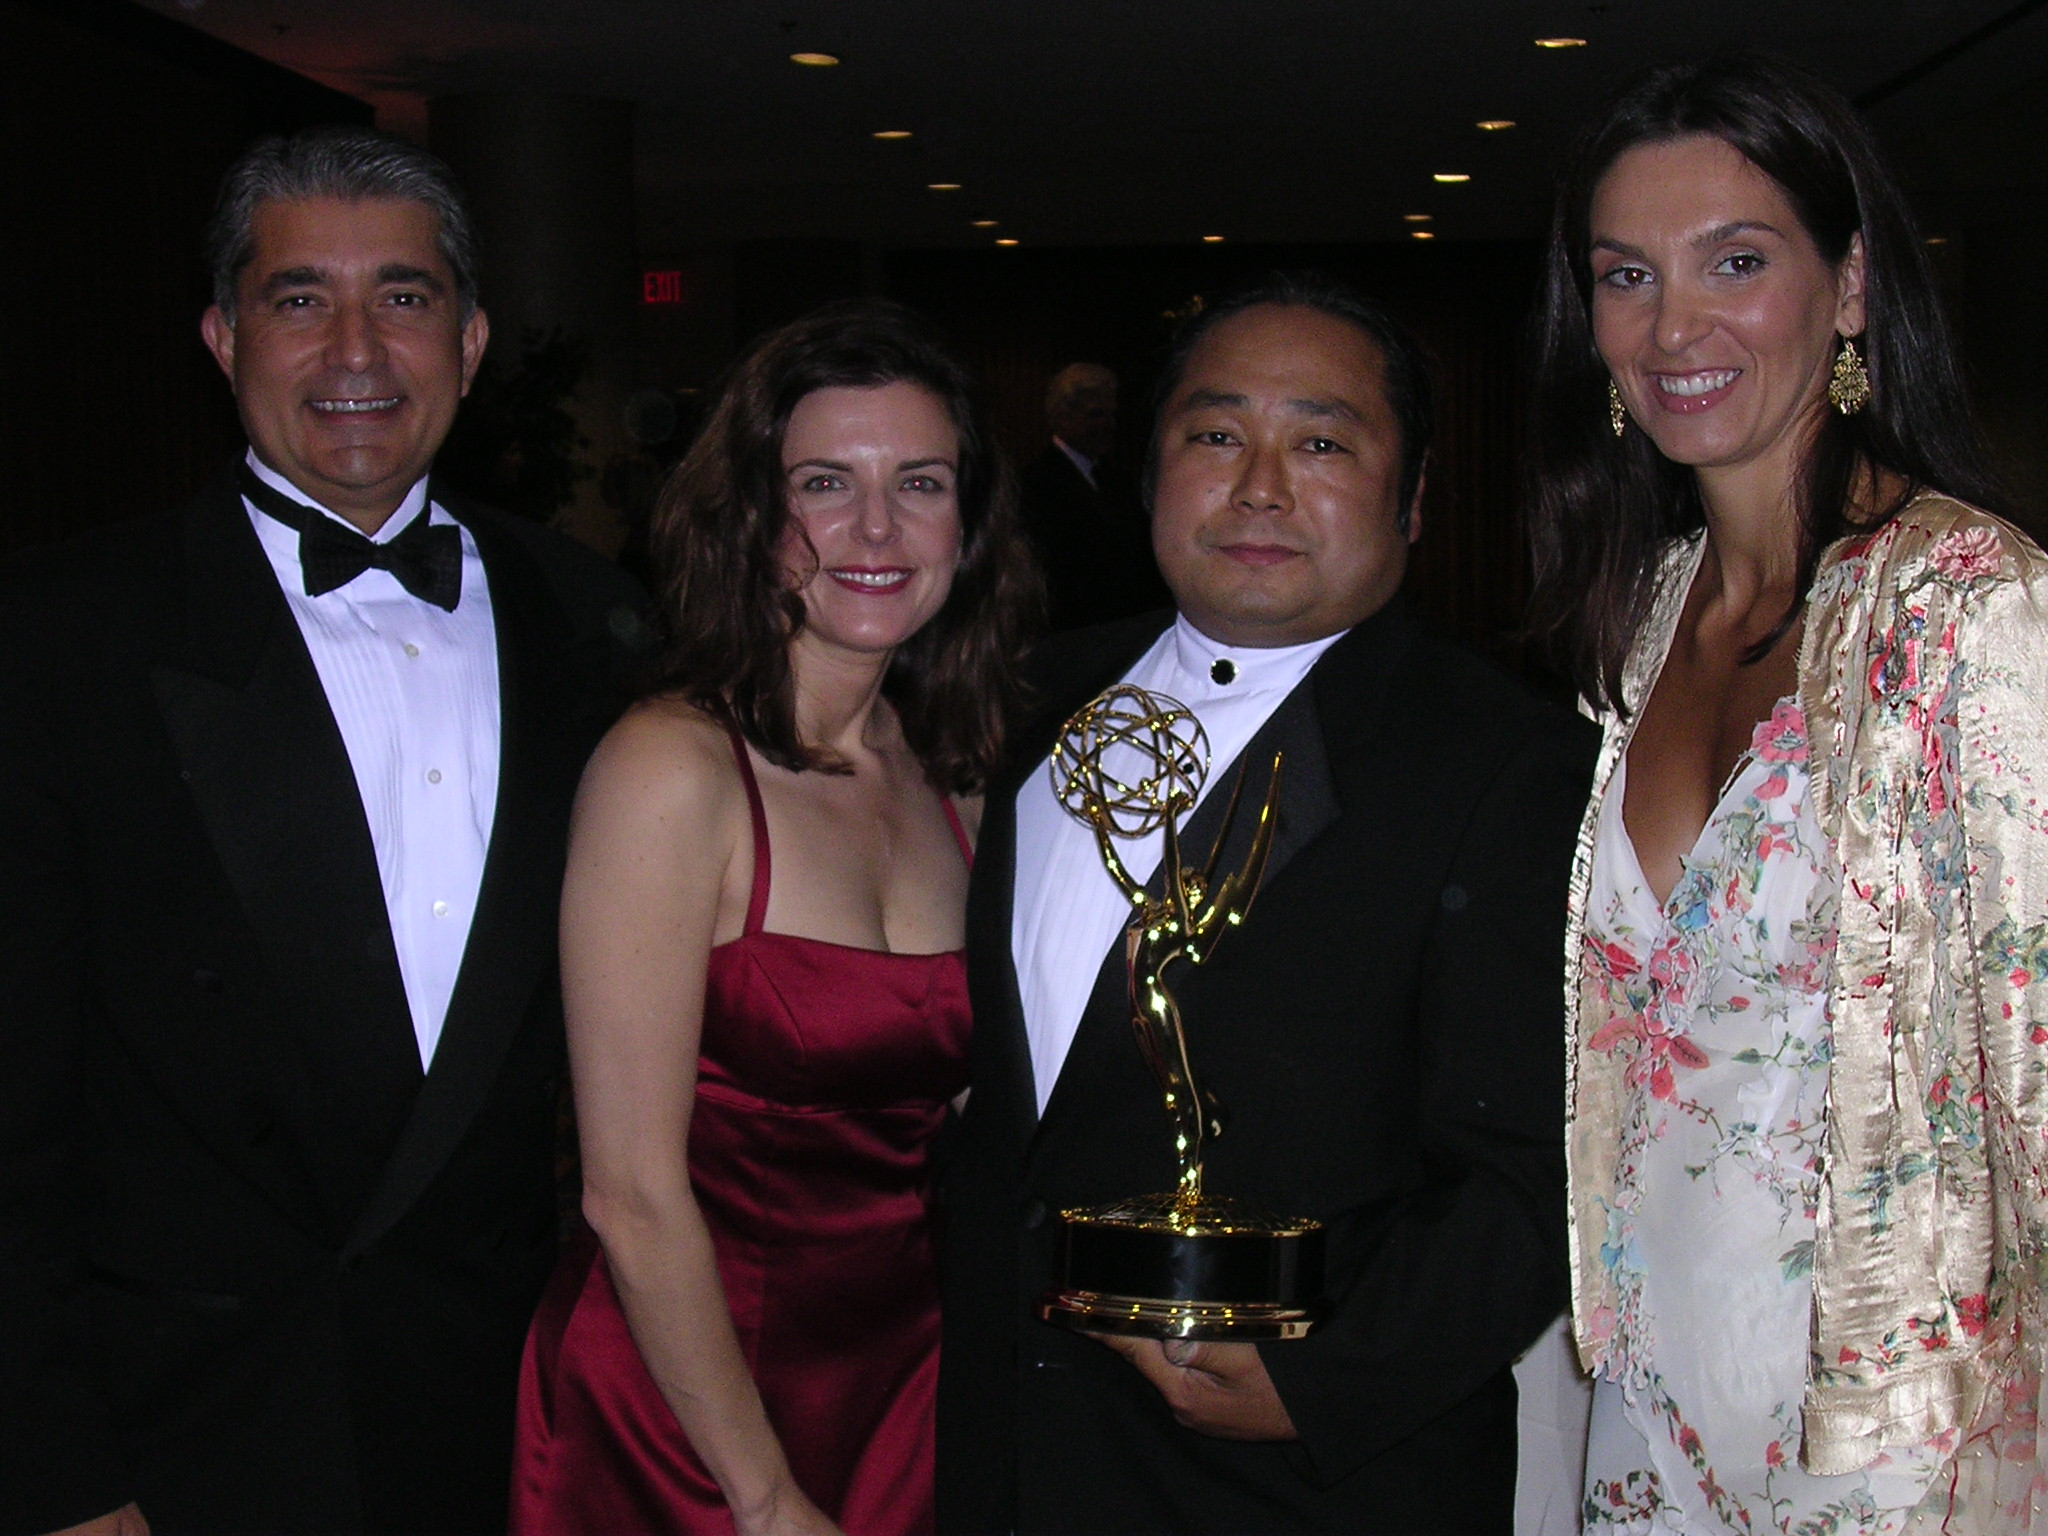 Bringing Emmy back to our table to celebrate with my best friends who traveled all the way to NYC. You gotta keep the faith. JB Burtin, Mary DeRosa Hughes, the cinematographer, and Rose Burtin.